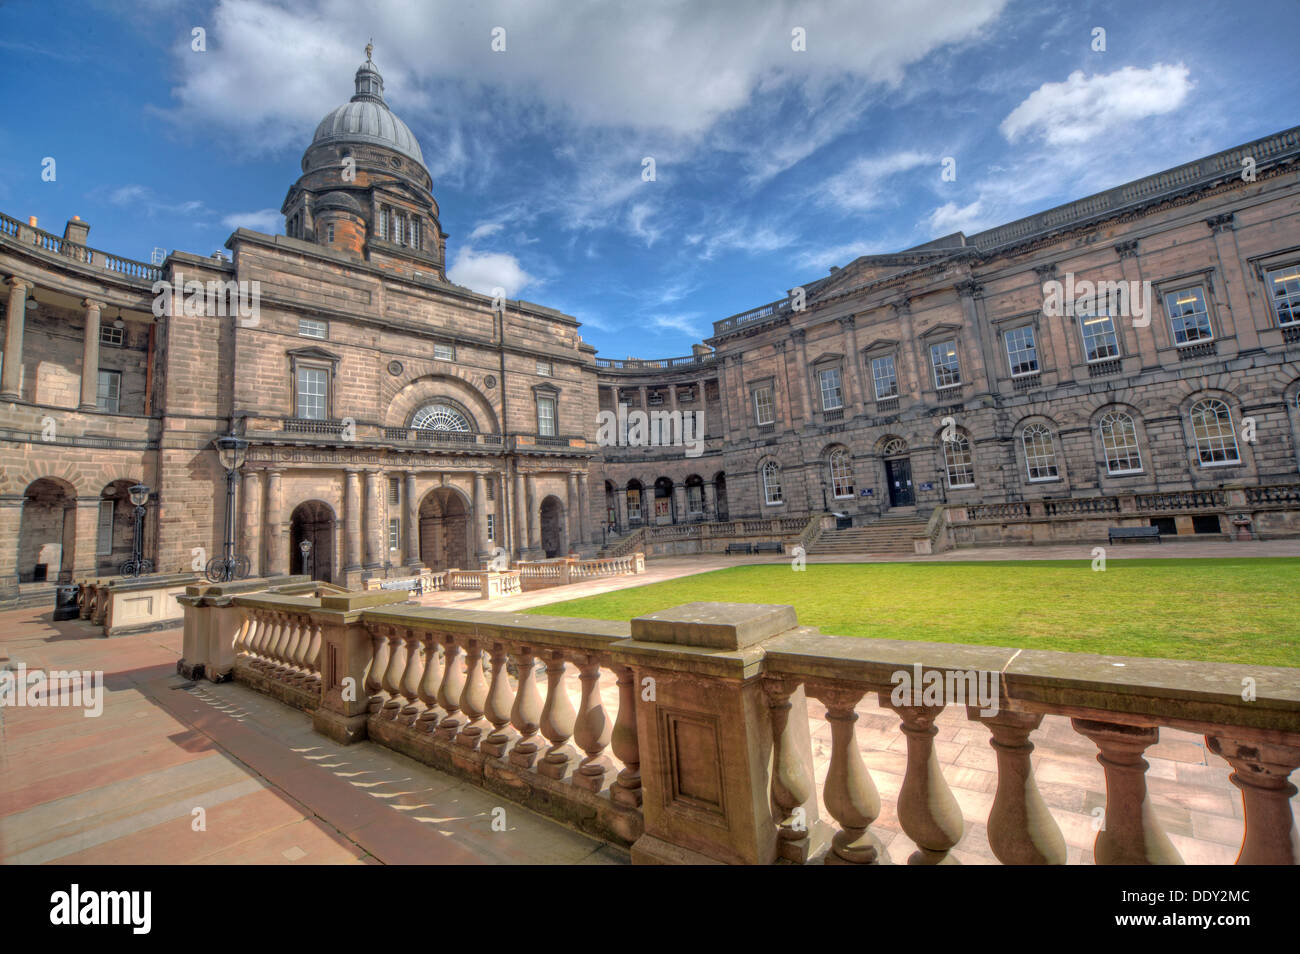 Scotland,UK,Scottish,uni,school,of,learning,building,architecture,Victorian,old,town,capital,city,cities,world,heritage,site,grade,II,grade2,listed,public,research,summer,2013,grass,Old,College,South,Bridge,Edinburgh,Midlothian,EH8,9YL,EH89YL,wide,view,shot,lens,tourist,tourism,attraction,dome,gotonysmith,oldtown,Edinburg,icon,iconic,Scots,Scotish,Scottish,Scotland,problem,with,Uni,stone,history,historic,tourist,tourism,tour,travel,study,student,Buy Pictures of,Buy Images Of,problem with,Edinburgh University,Edinburgh Uni